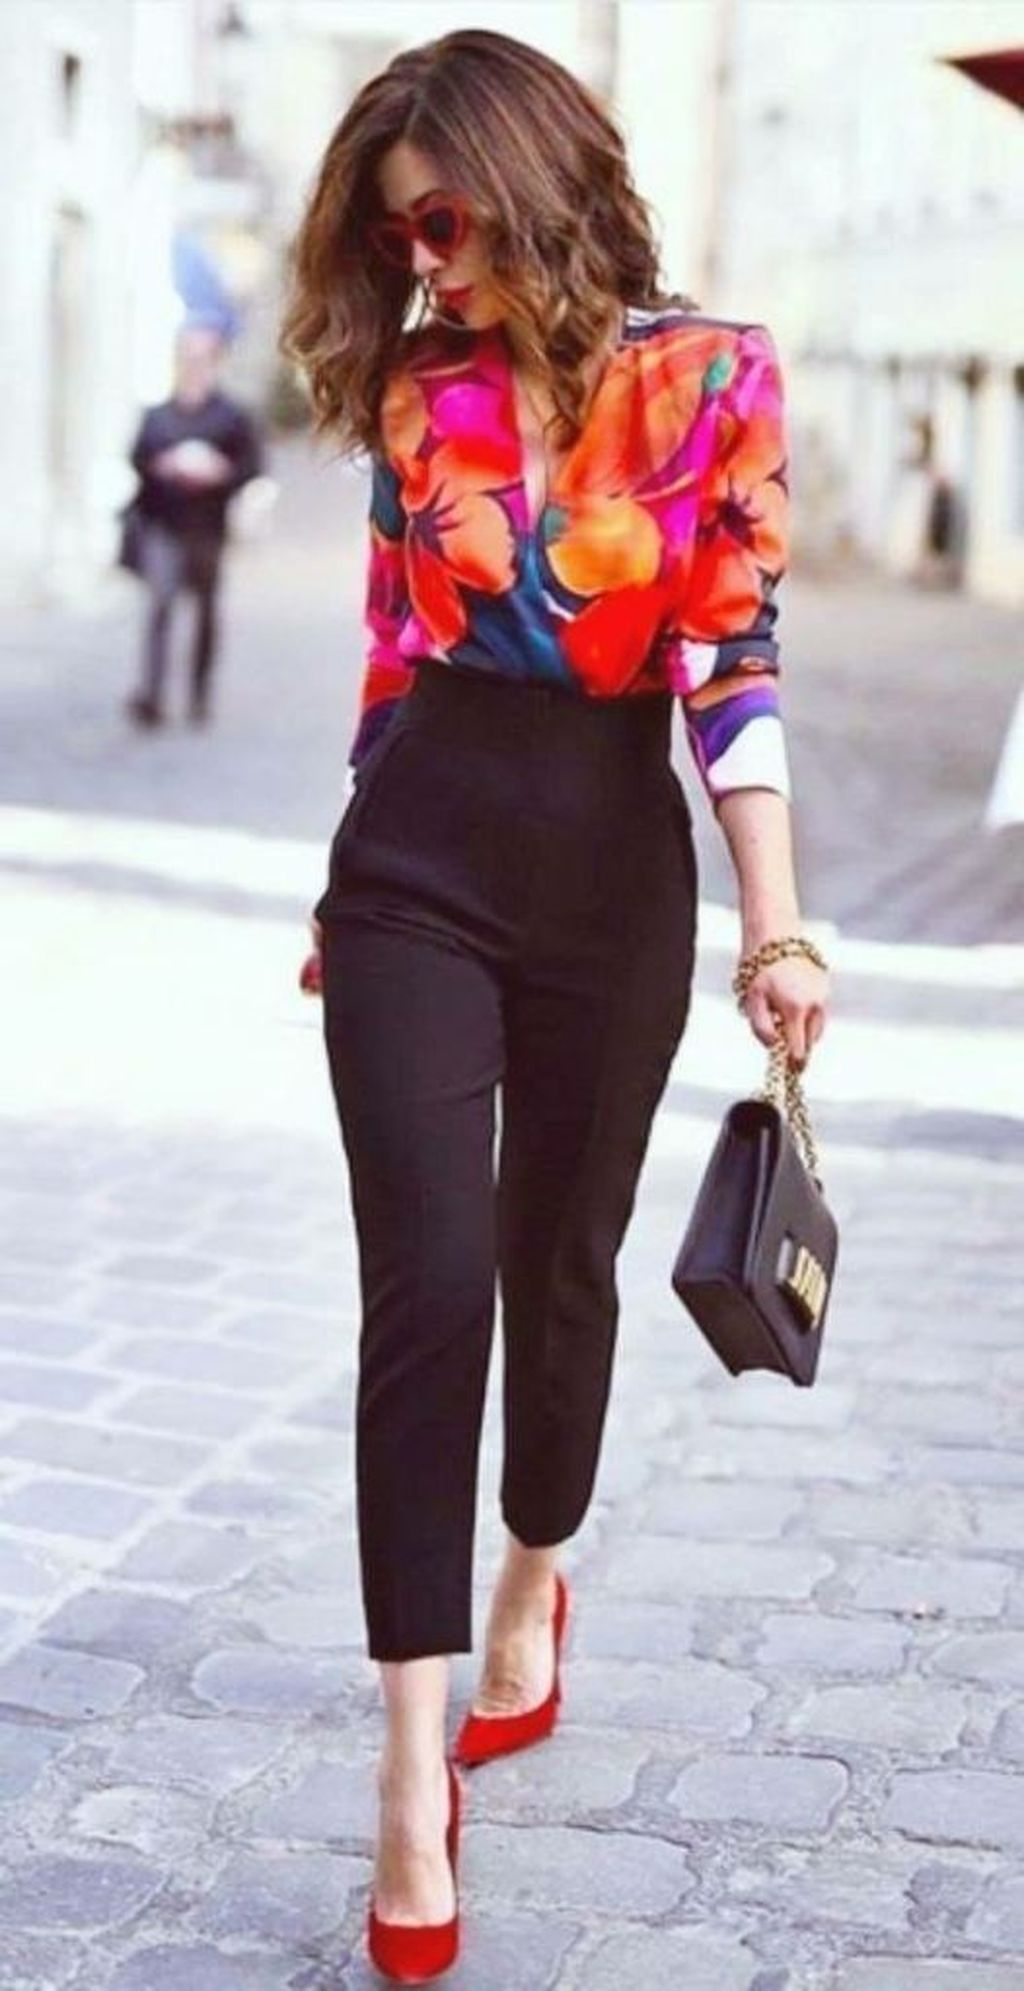 38 Stylish Work Office Outfits Ideas For Women #officeoutfit